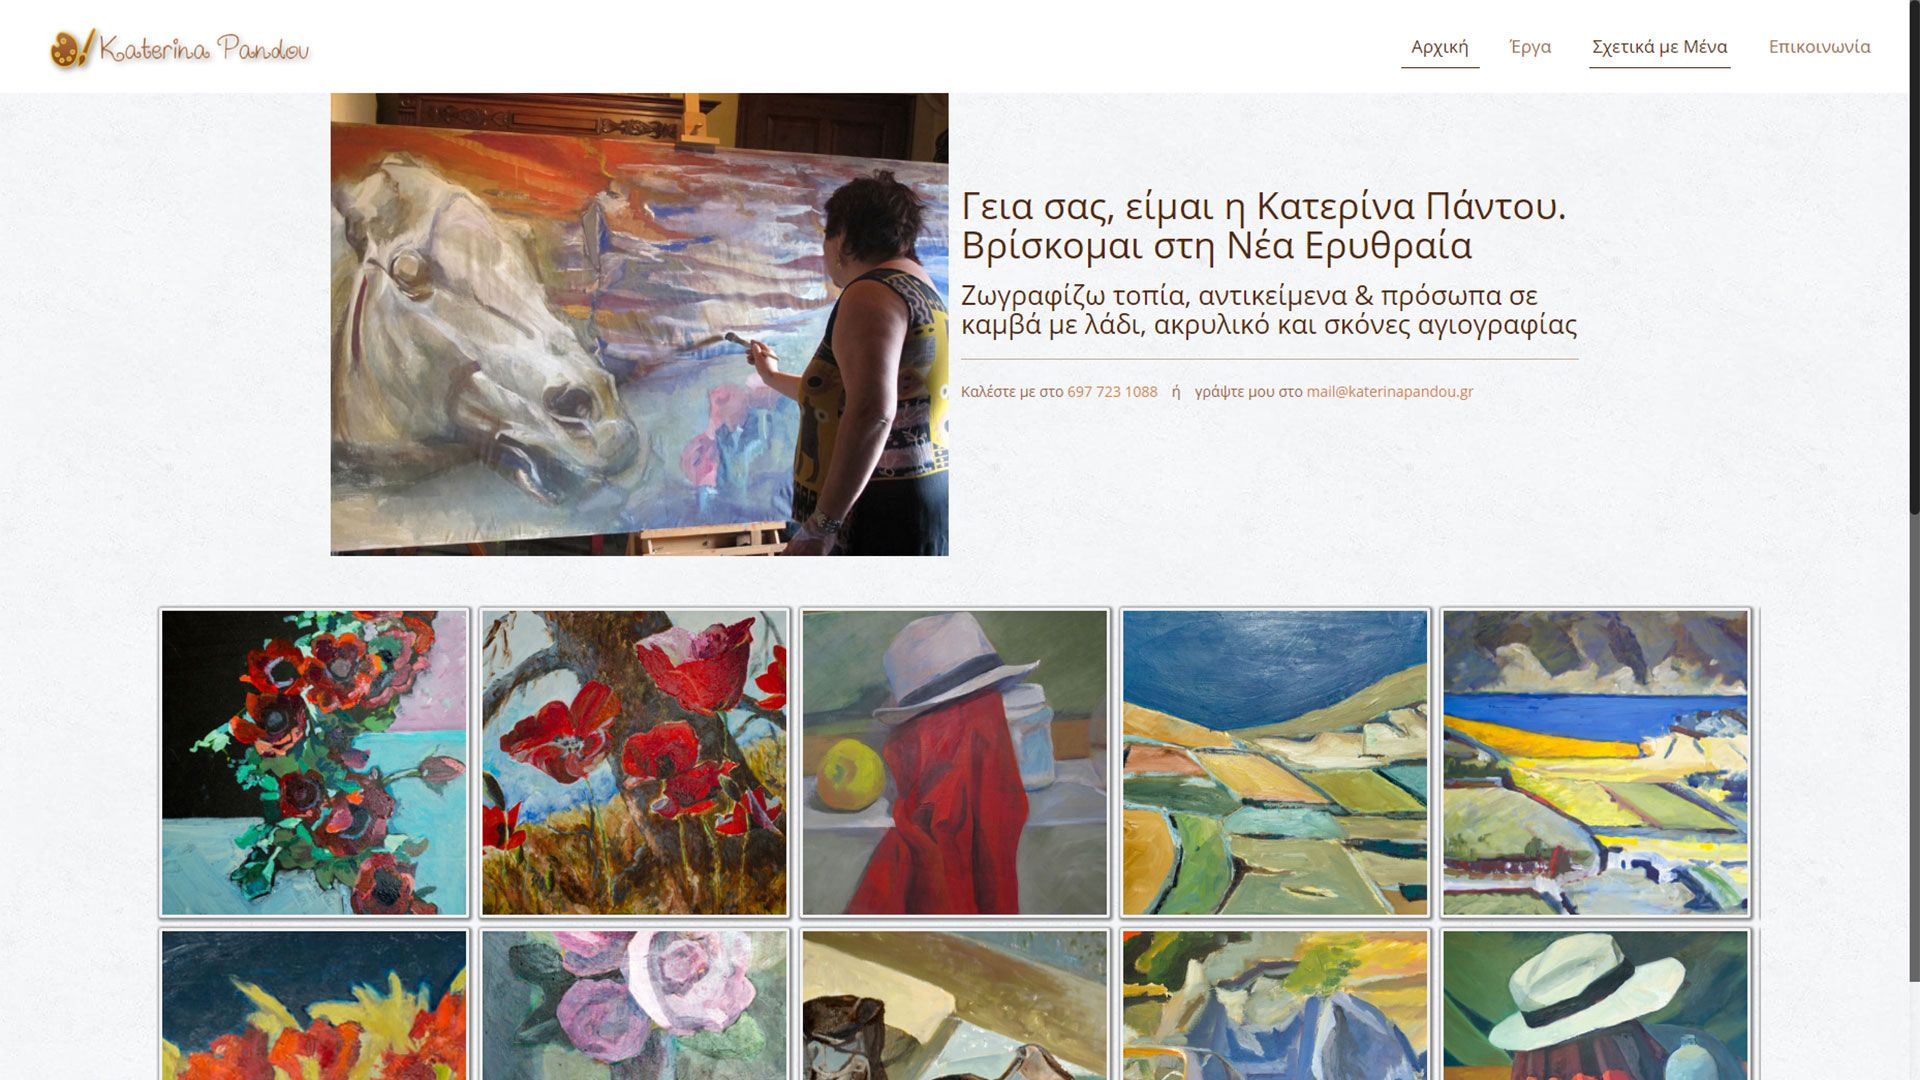 Our Works - KaterinaPandou.gr